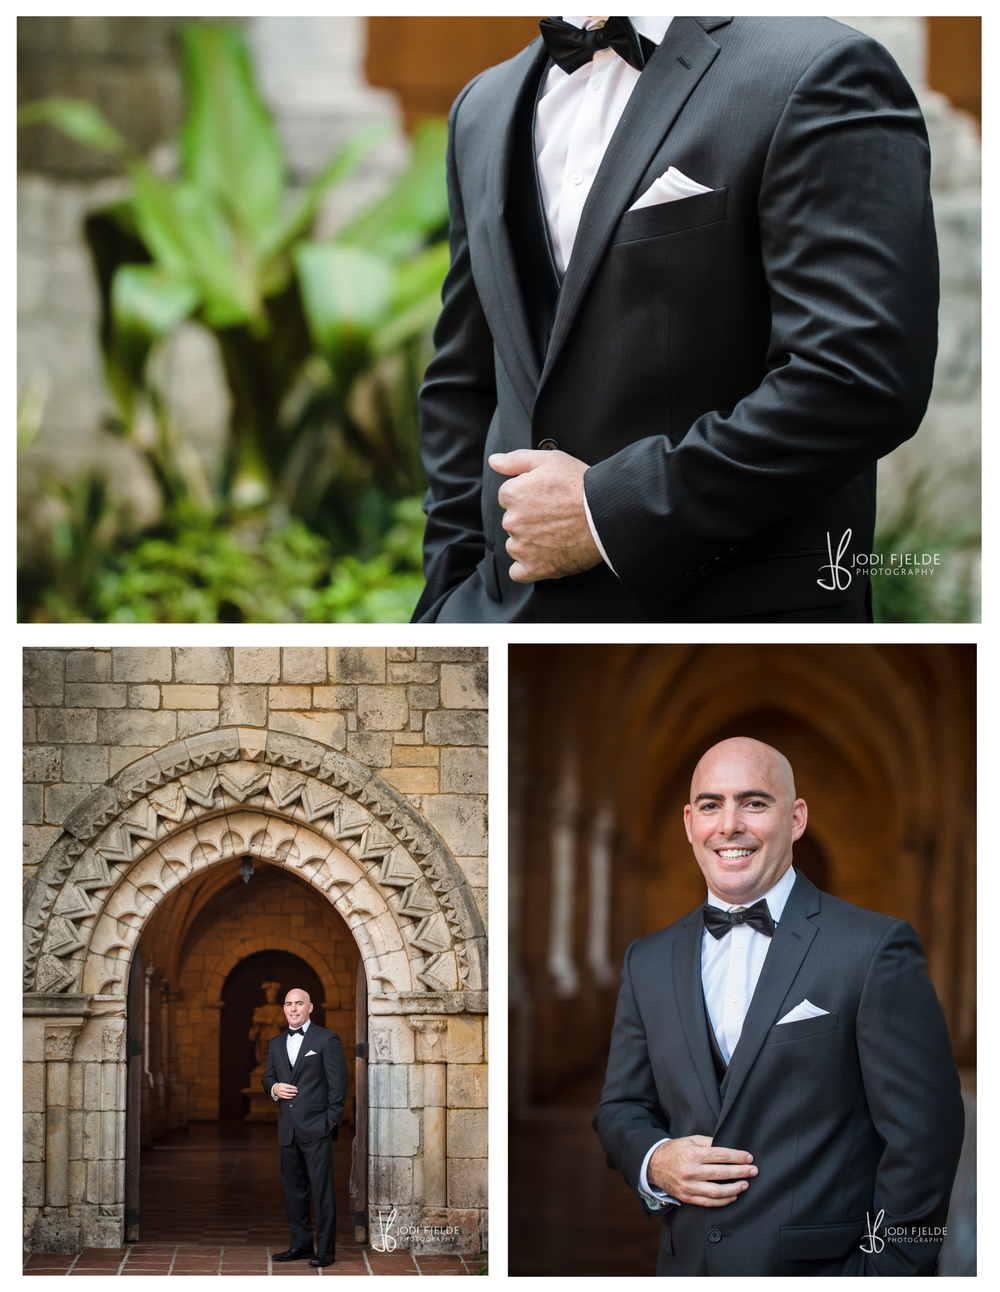 Ancient_Spanish_Monastery_Miami_Florida_wedding_Gio_Iggy_Jodi_Fjelde_Photography_6.jpg